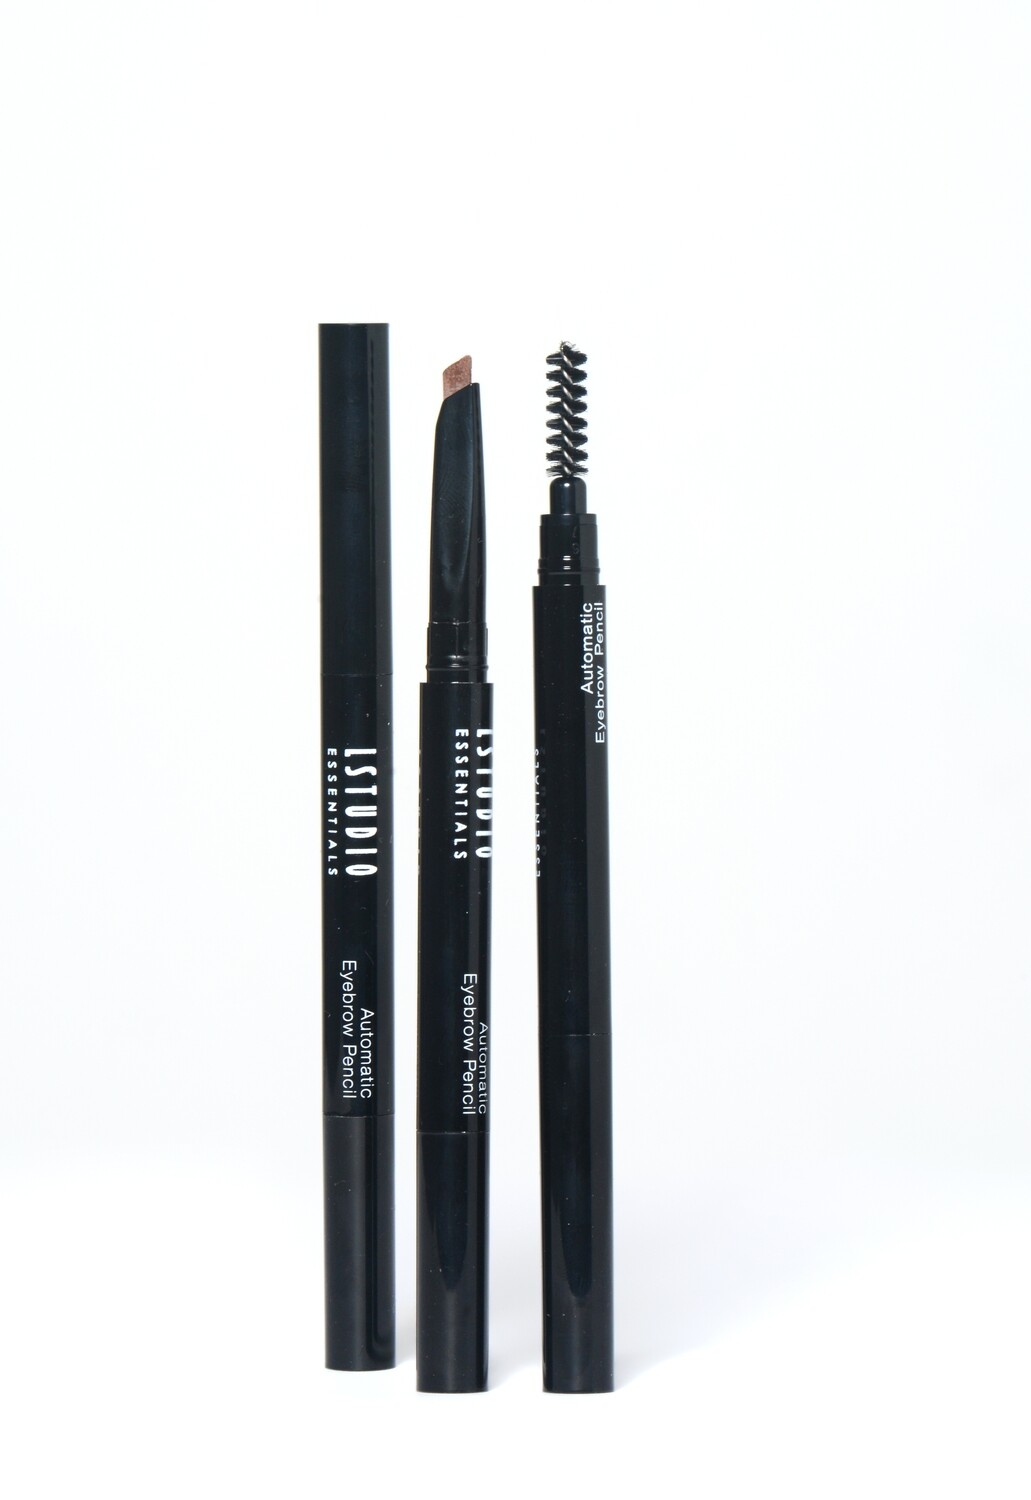 Brow pencil (4 shades)